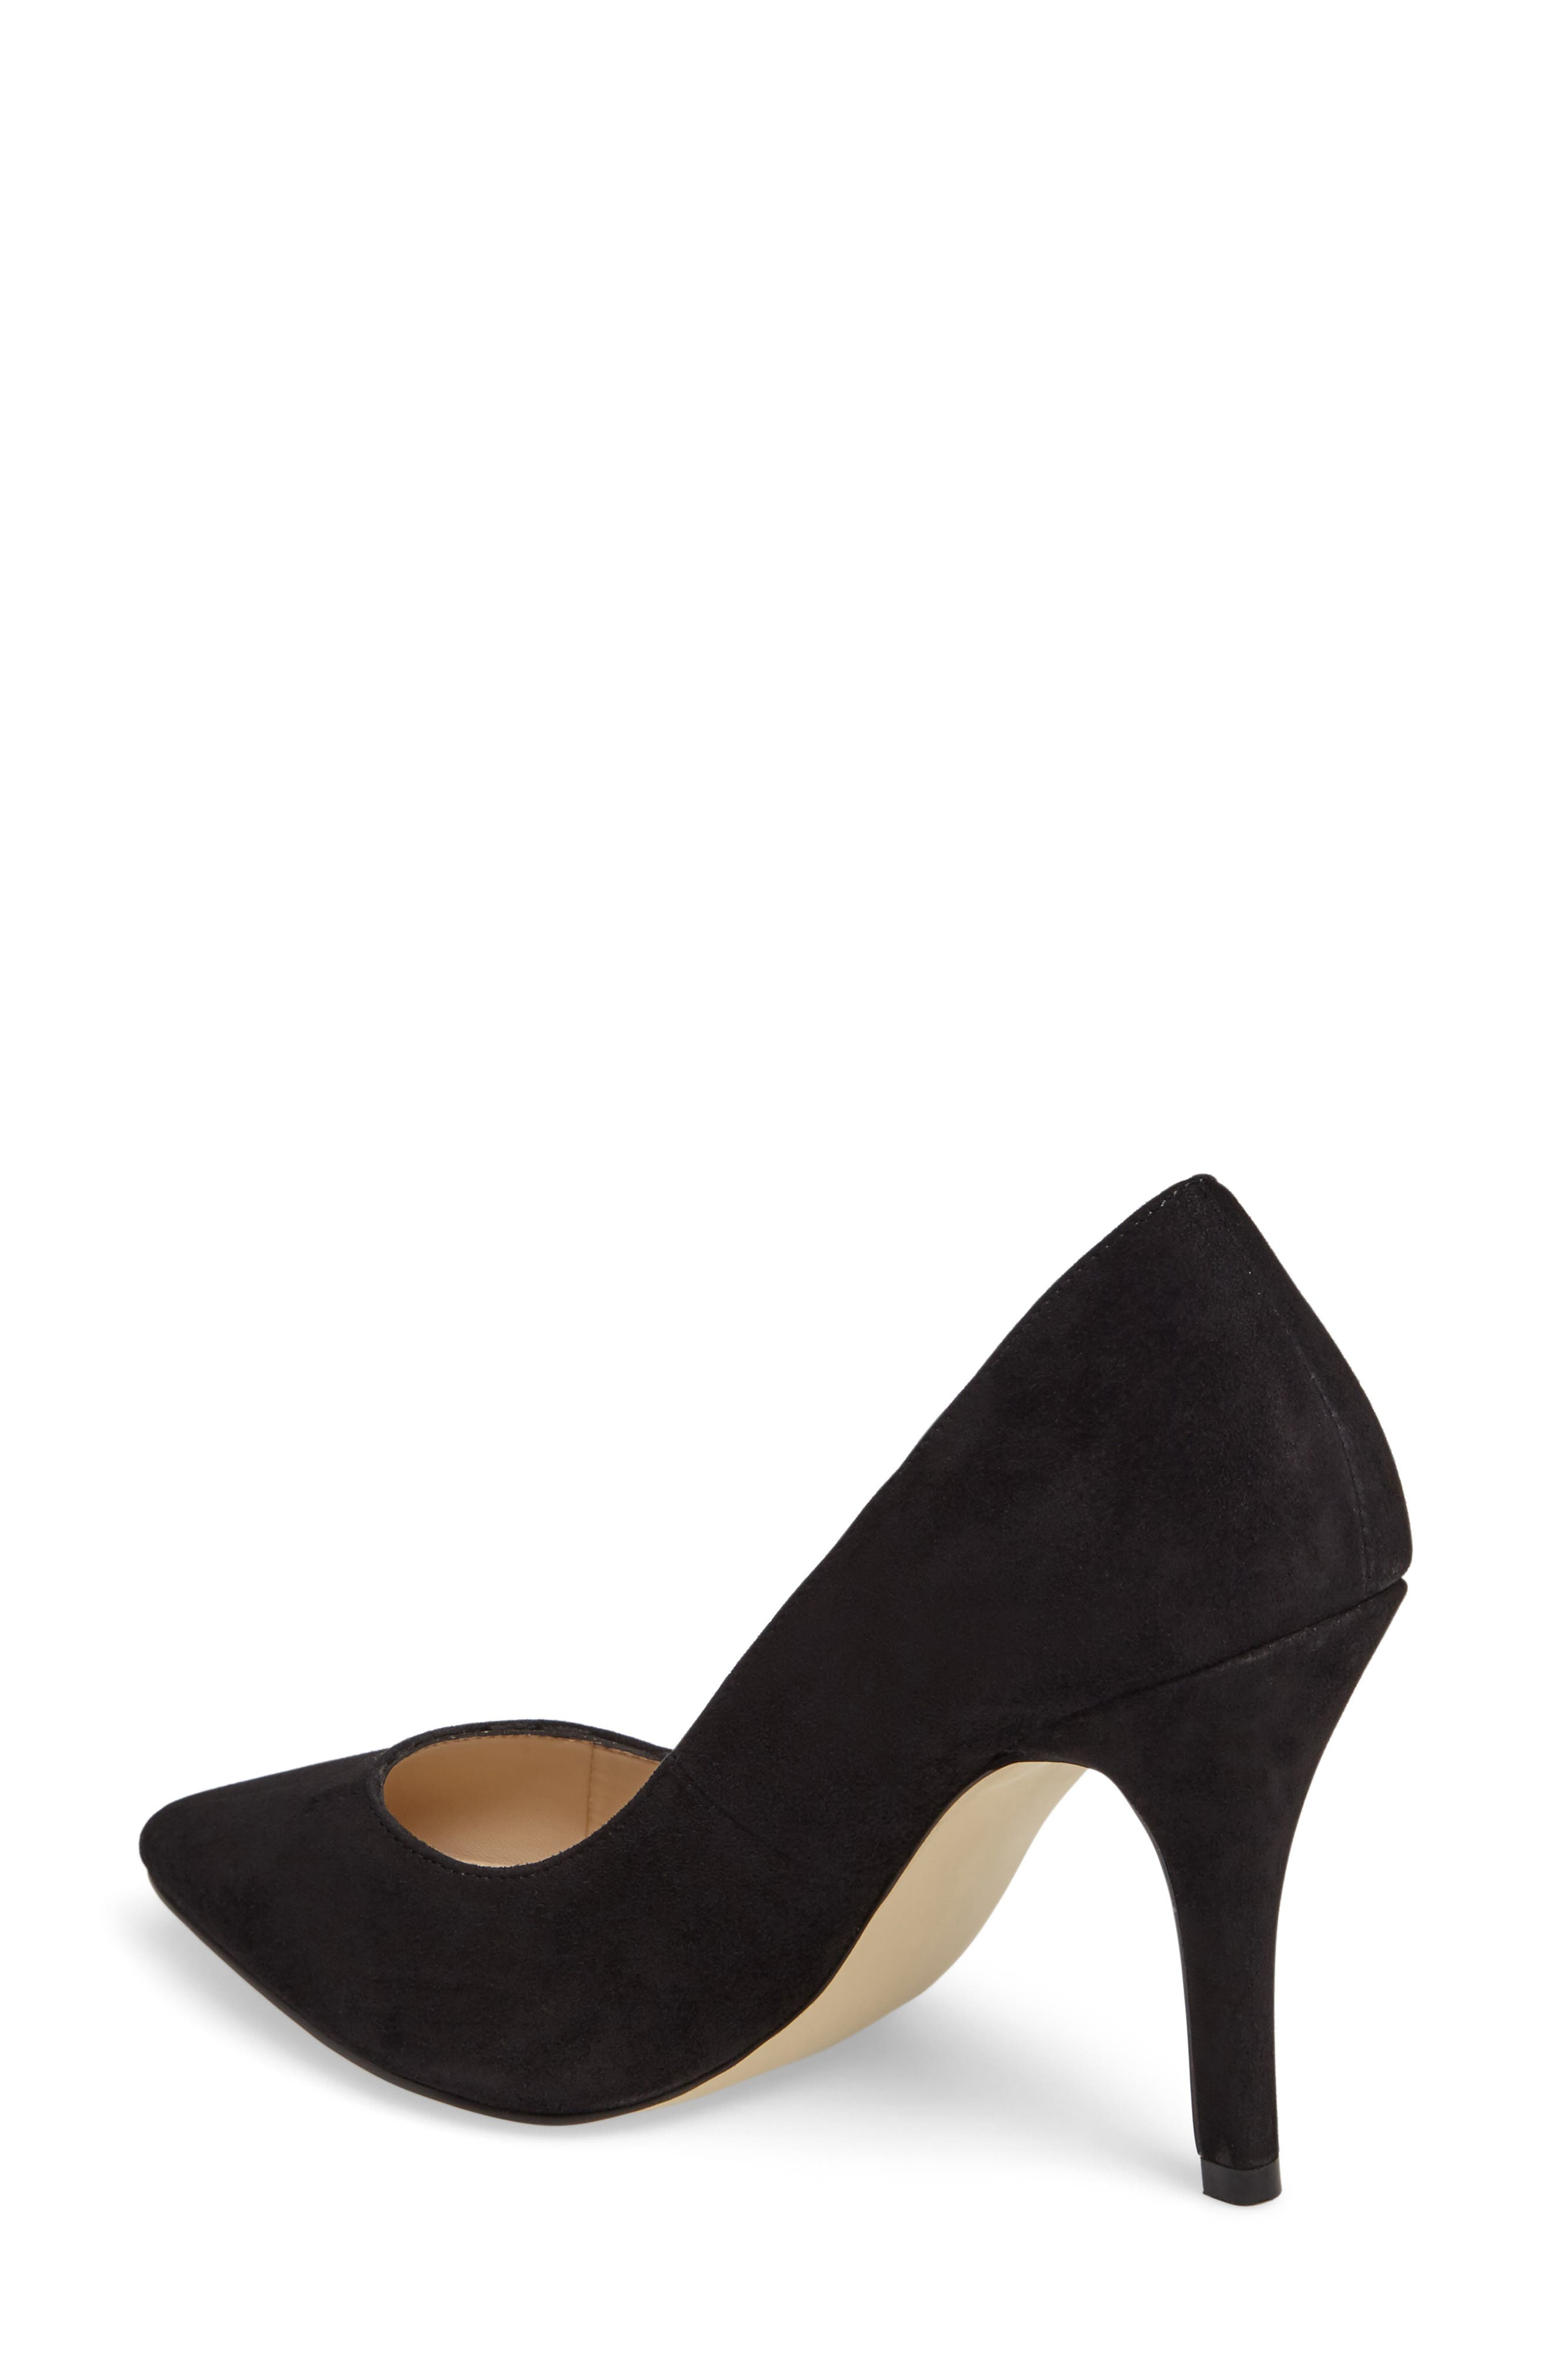 Vally Pointy Toe Pump,                             Alternate thumbnail 2, color,                             001